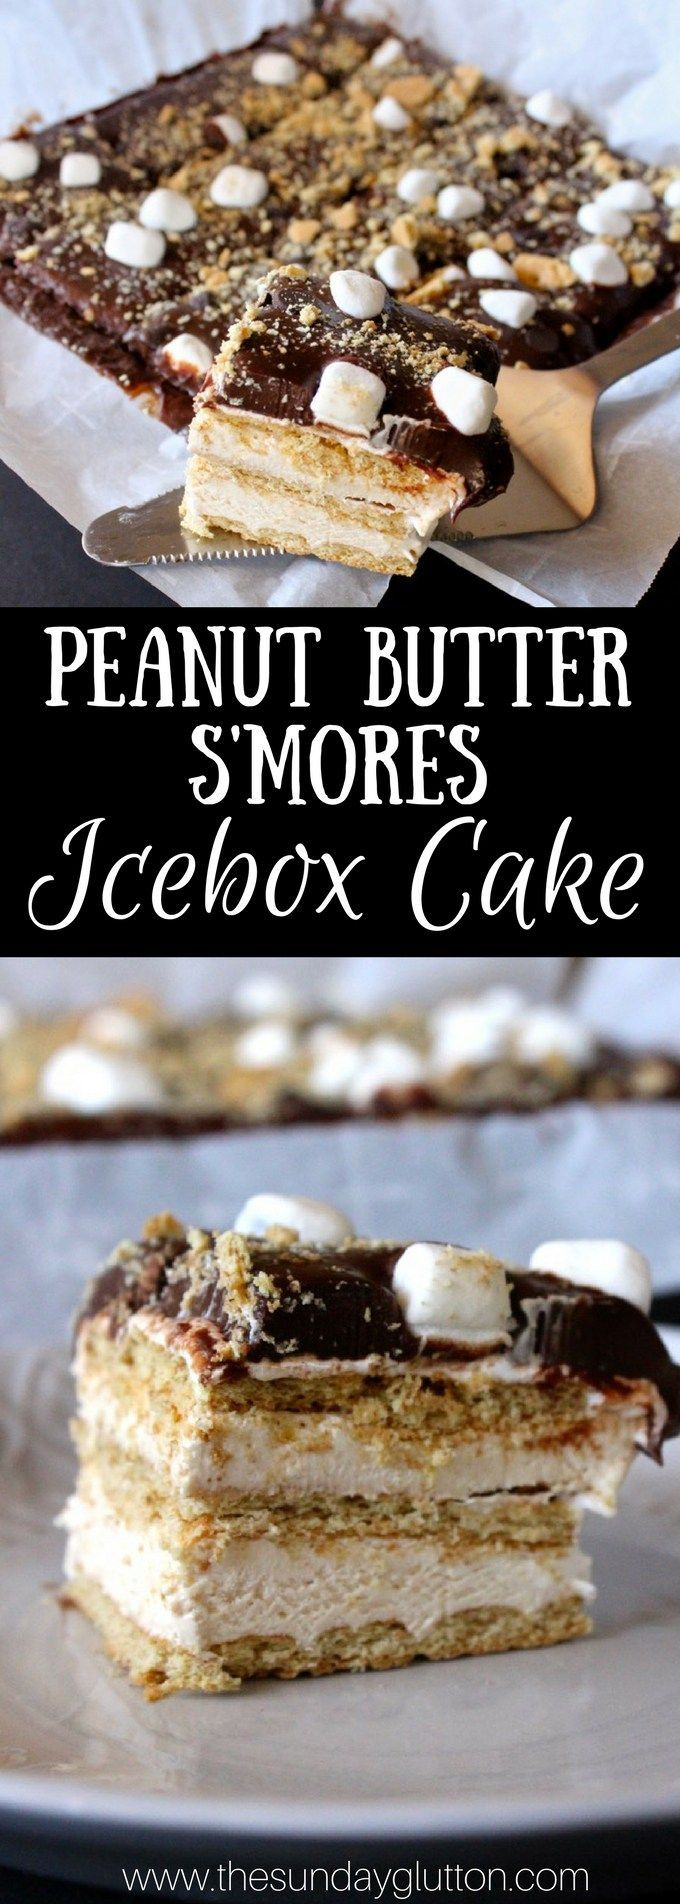 This Peanut Butter S'mores Icebox Cake is a quick and easy, no-bake dessert with creamy peanut butter marshmallow filling, crunchy graham crackers, and chocolate on top. A perfect, frozen summer treat!